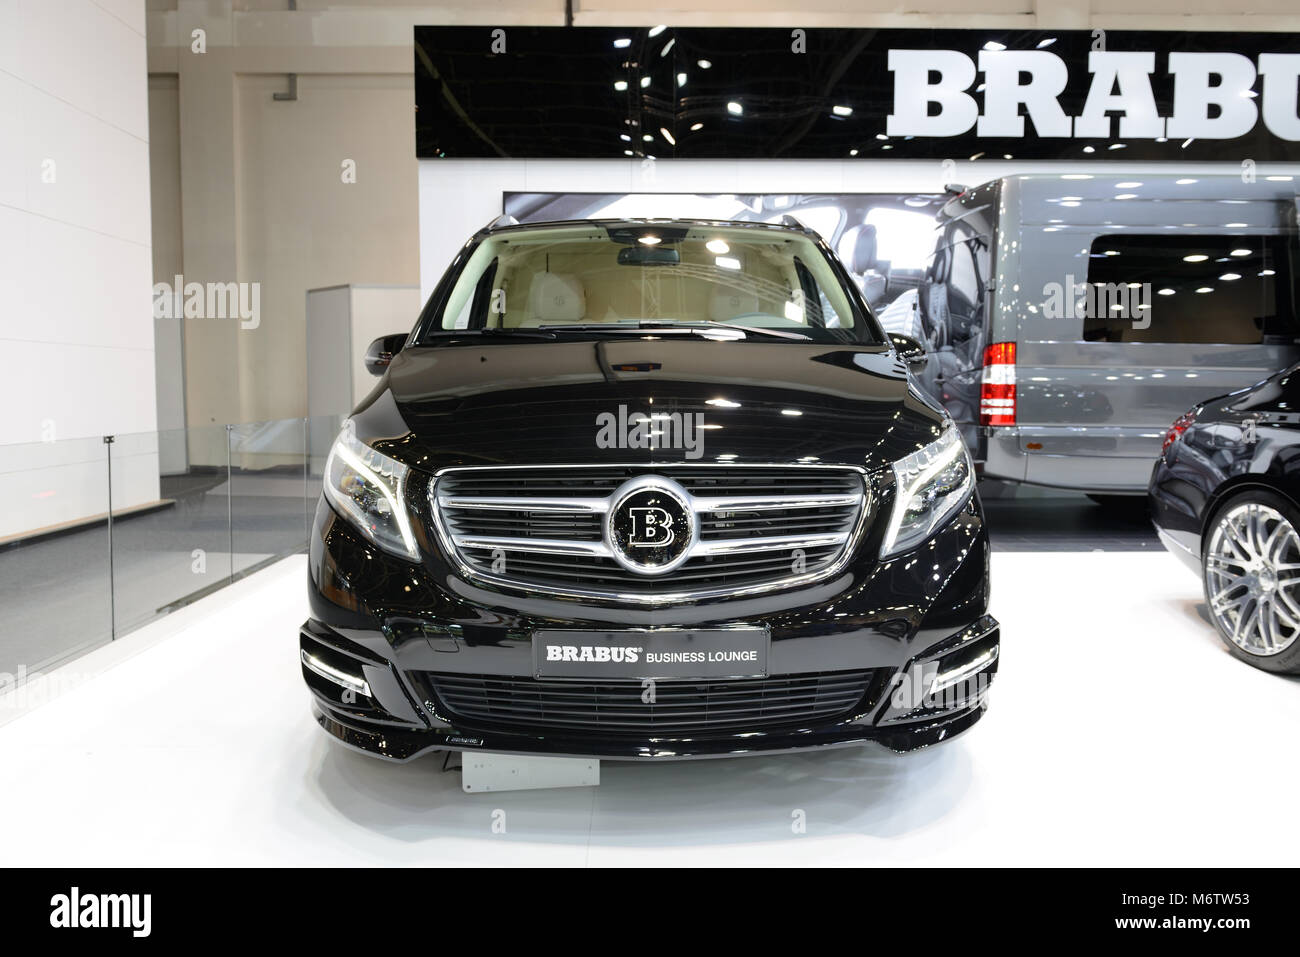 DUBAI, UAE   NOVEMBER 18: The Mercedes Benz Brabus V Class Van Is On Dubai  Motor Show 2017 On November 18, 2017